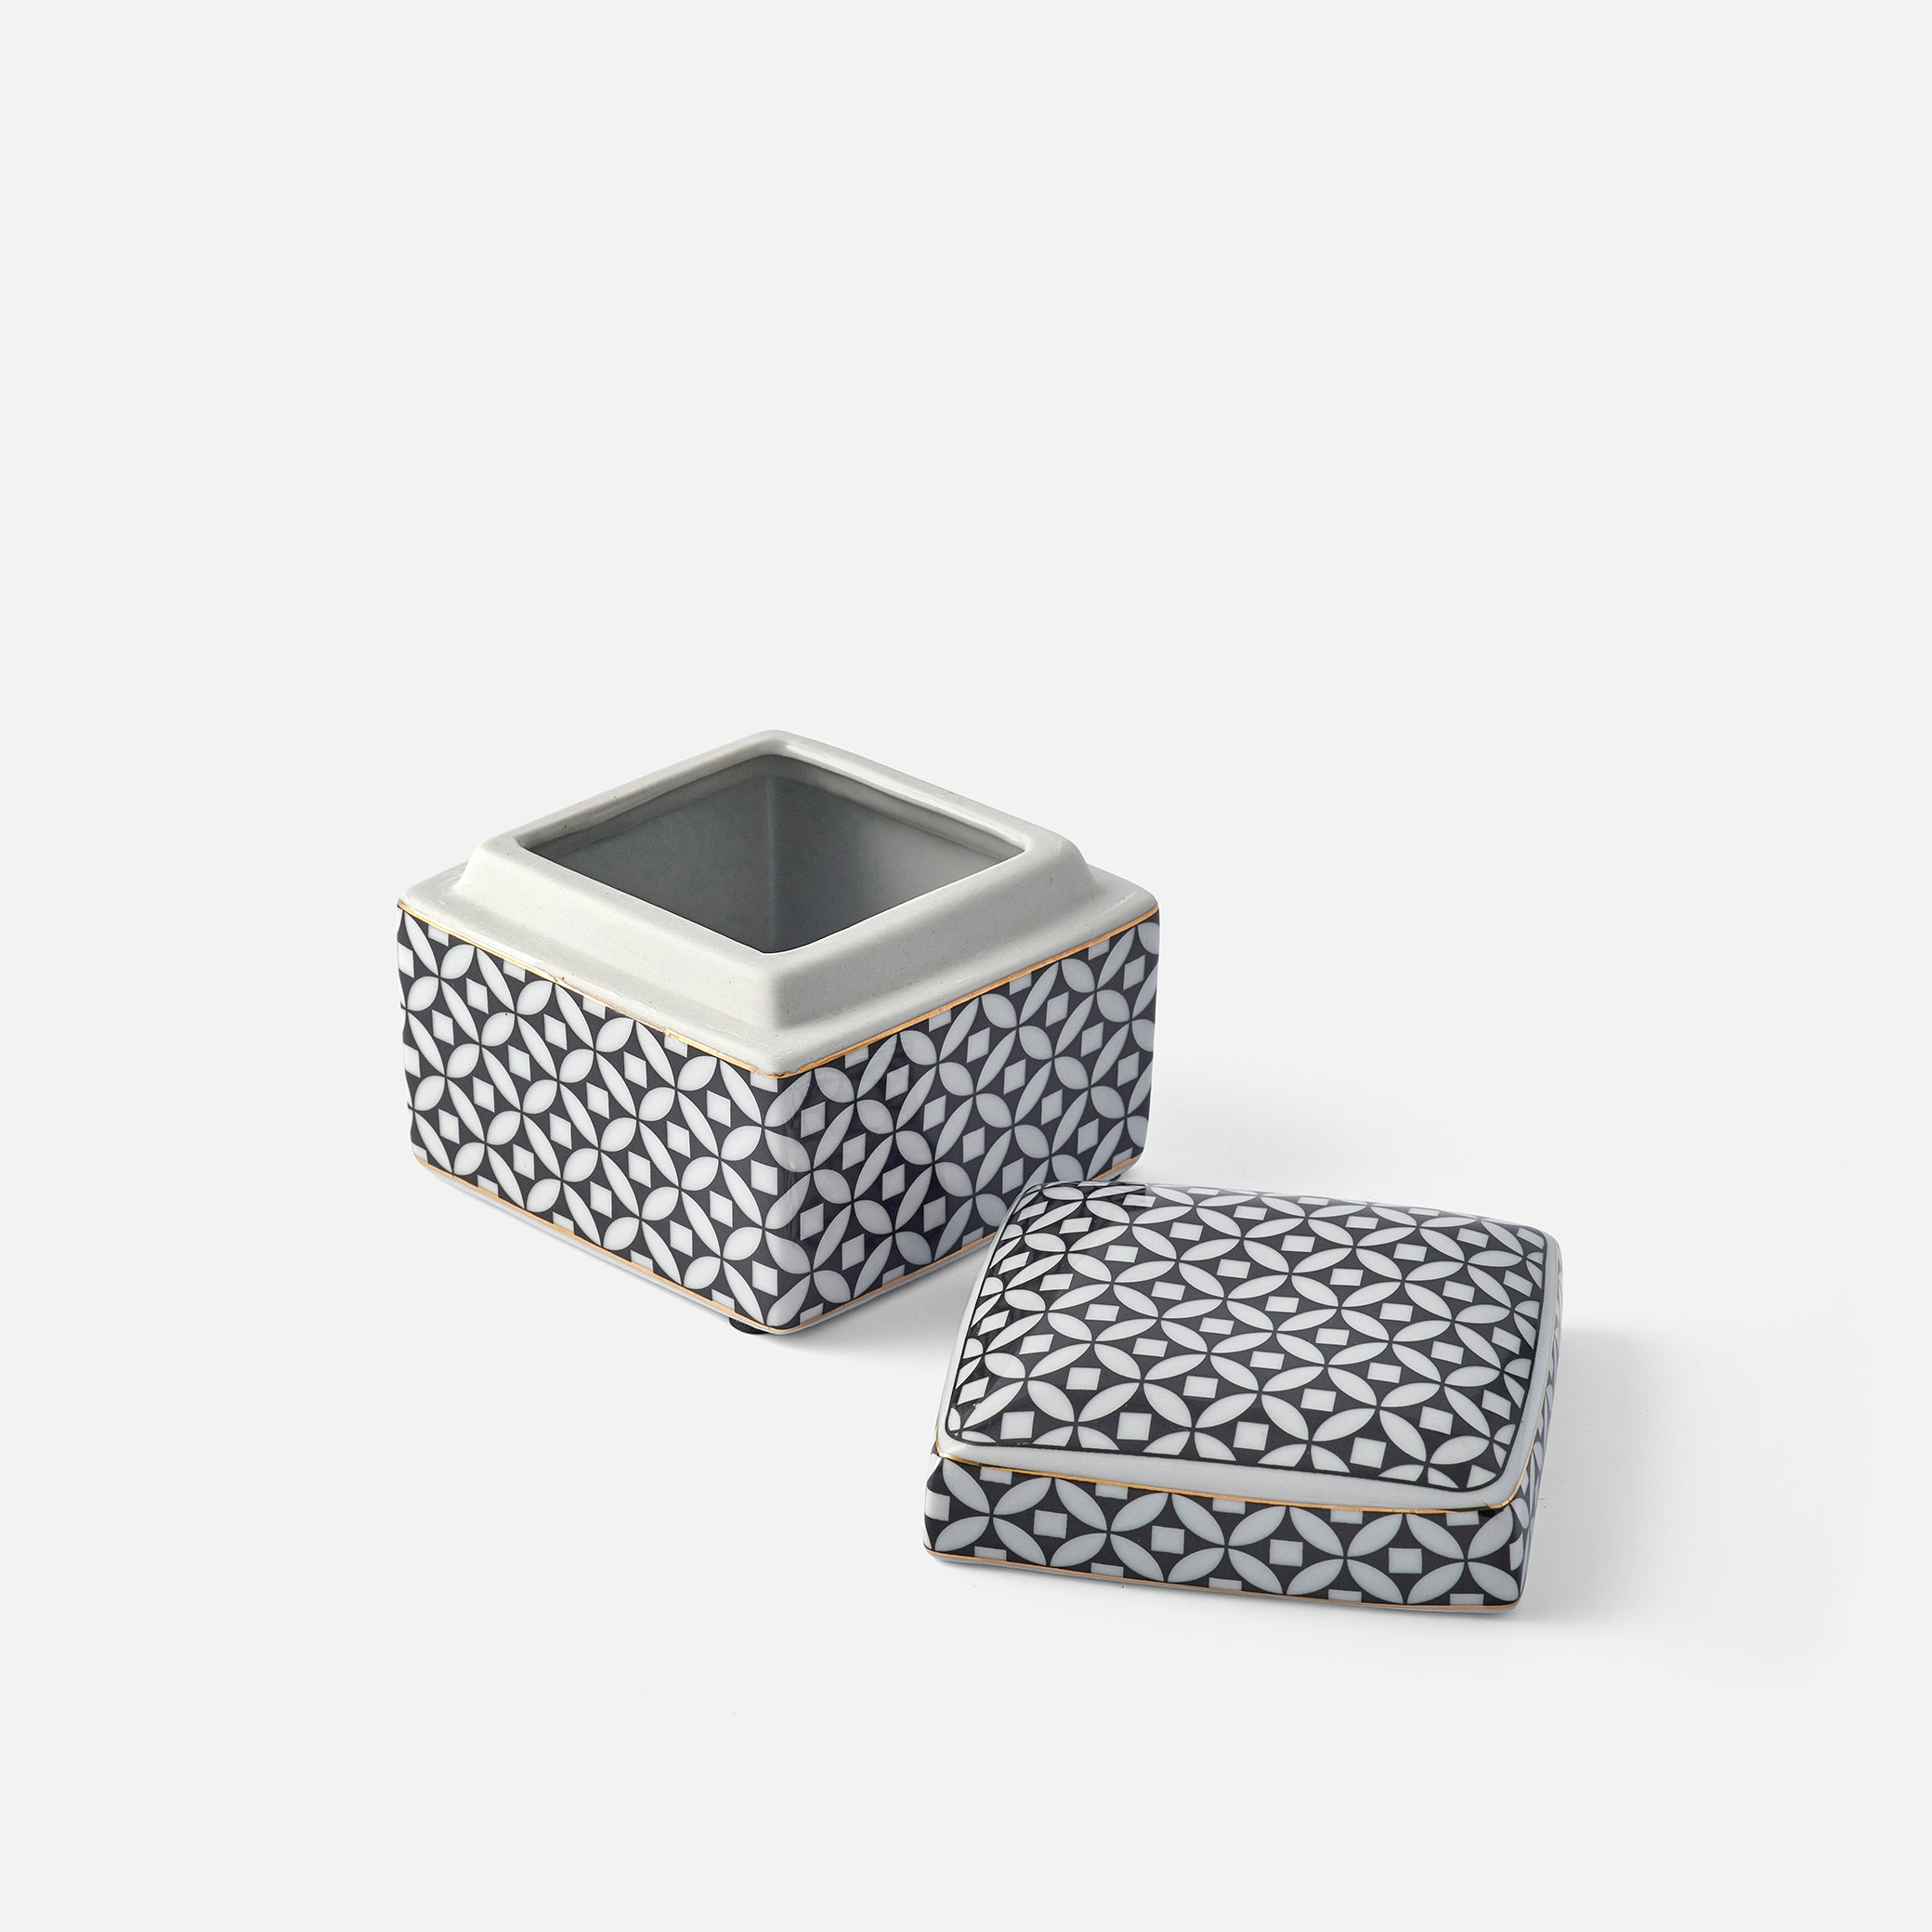 Small Monochrome Lidded Box